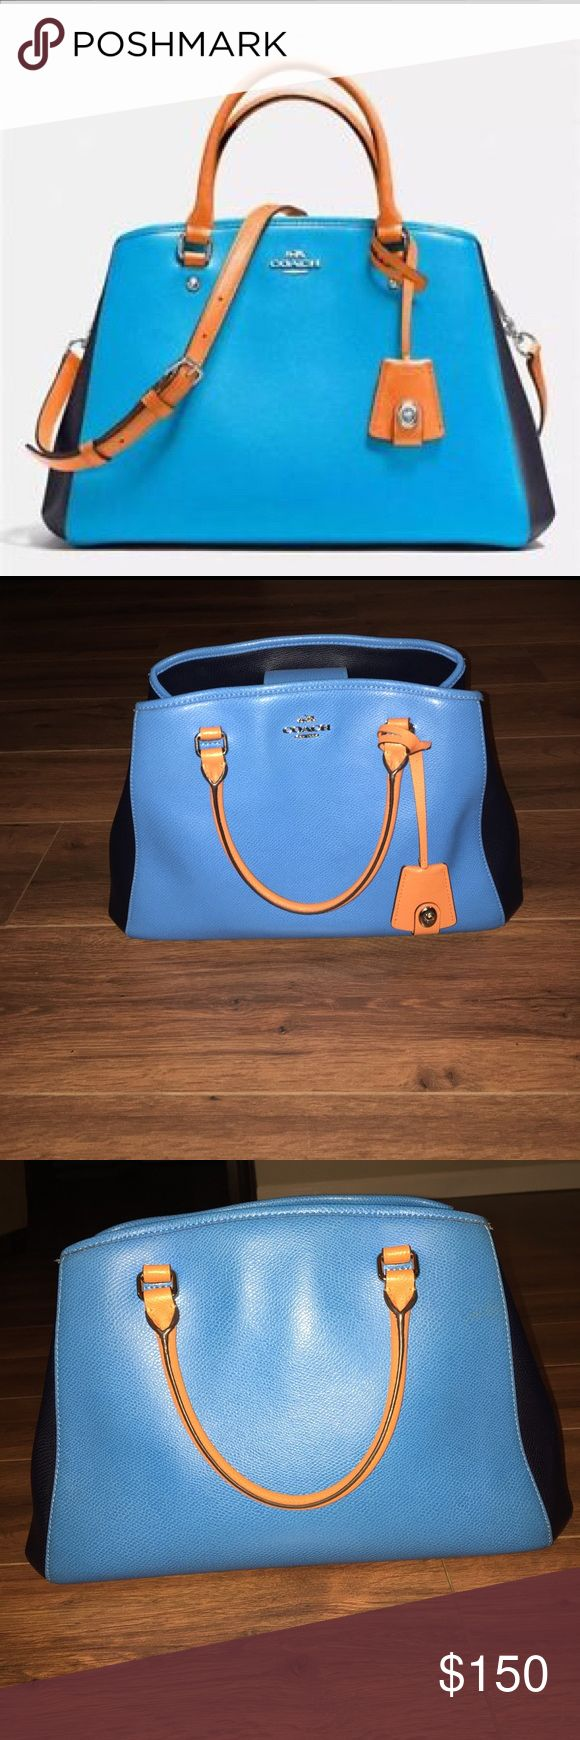 Coach Margot Purse Blue colorblock with navy and orange trim Margot purse. I still have the cross body strap, I never used it, it is still like I received it, wrapped. Every time I carry this bag, someone compliments it. I also have a wallet to match, listing coming soon. This bag is in excellent shape! Coach Bags Crossbody Bags